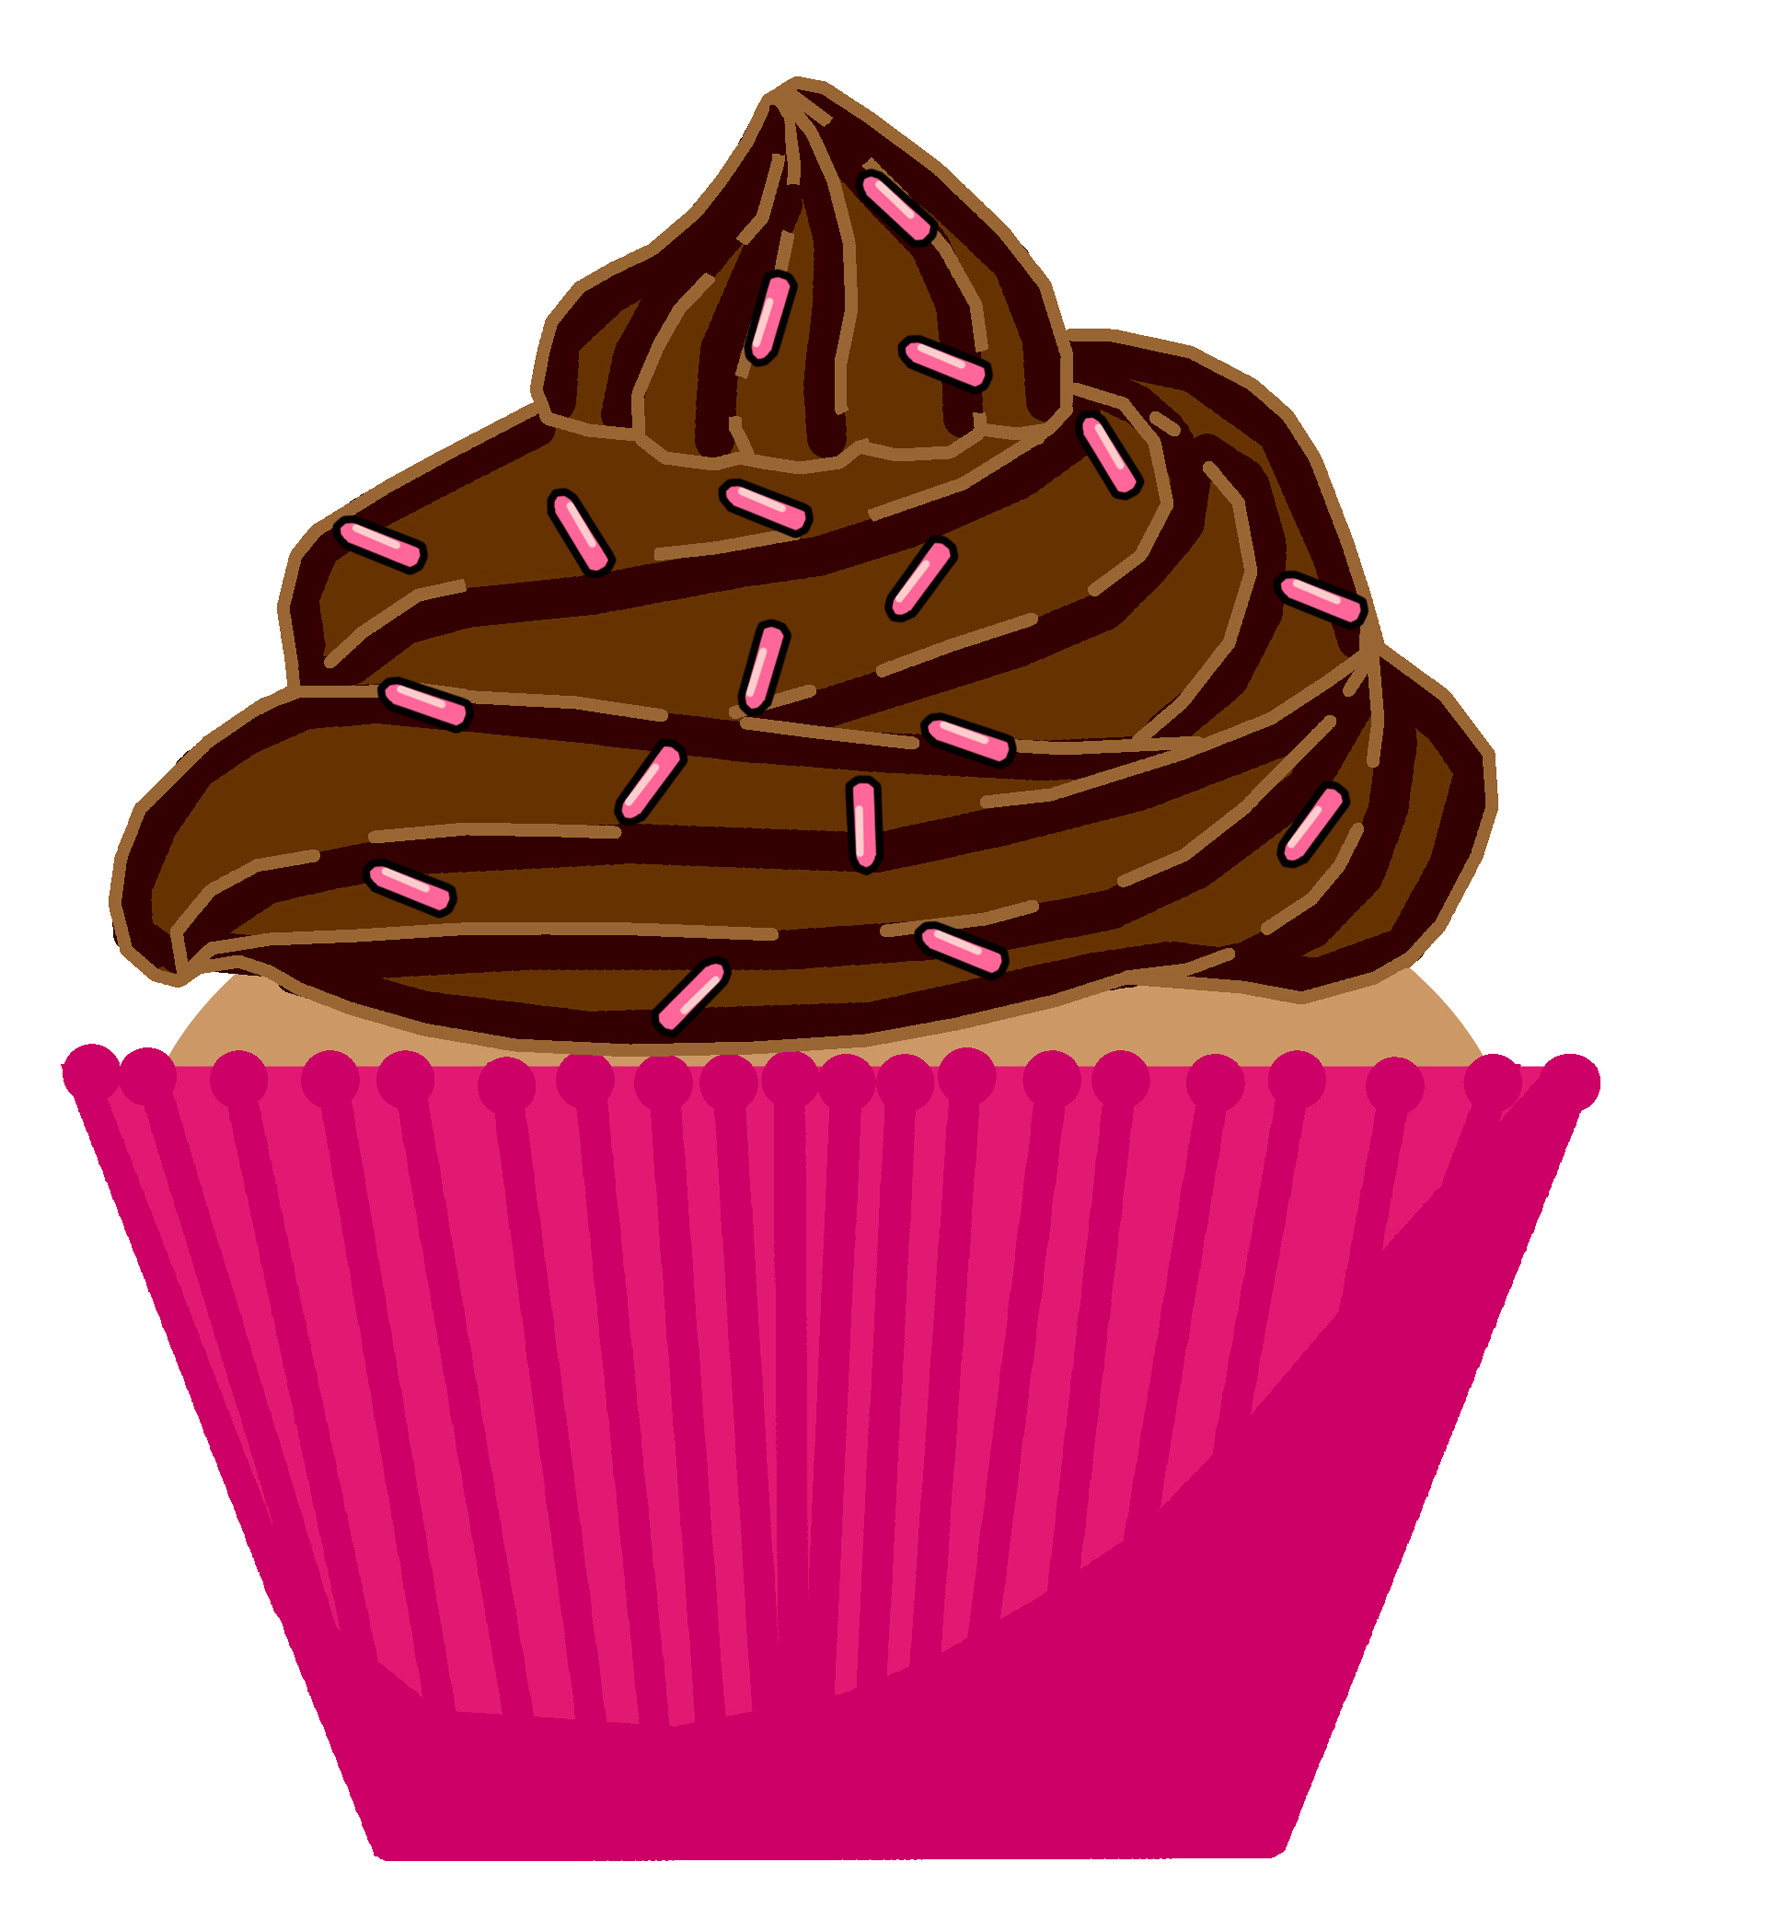 Dessert clipart pink clip freeuse library Free Dessert Clipart | Free download best Free Dessert Clipart on ... clip freeuse library